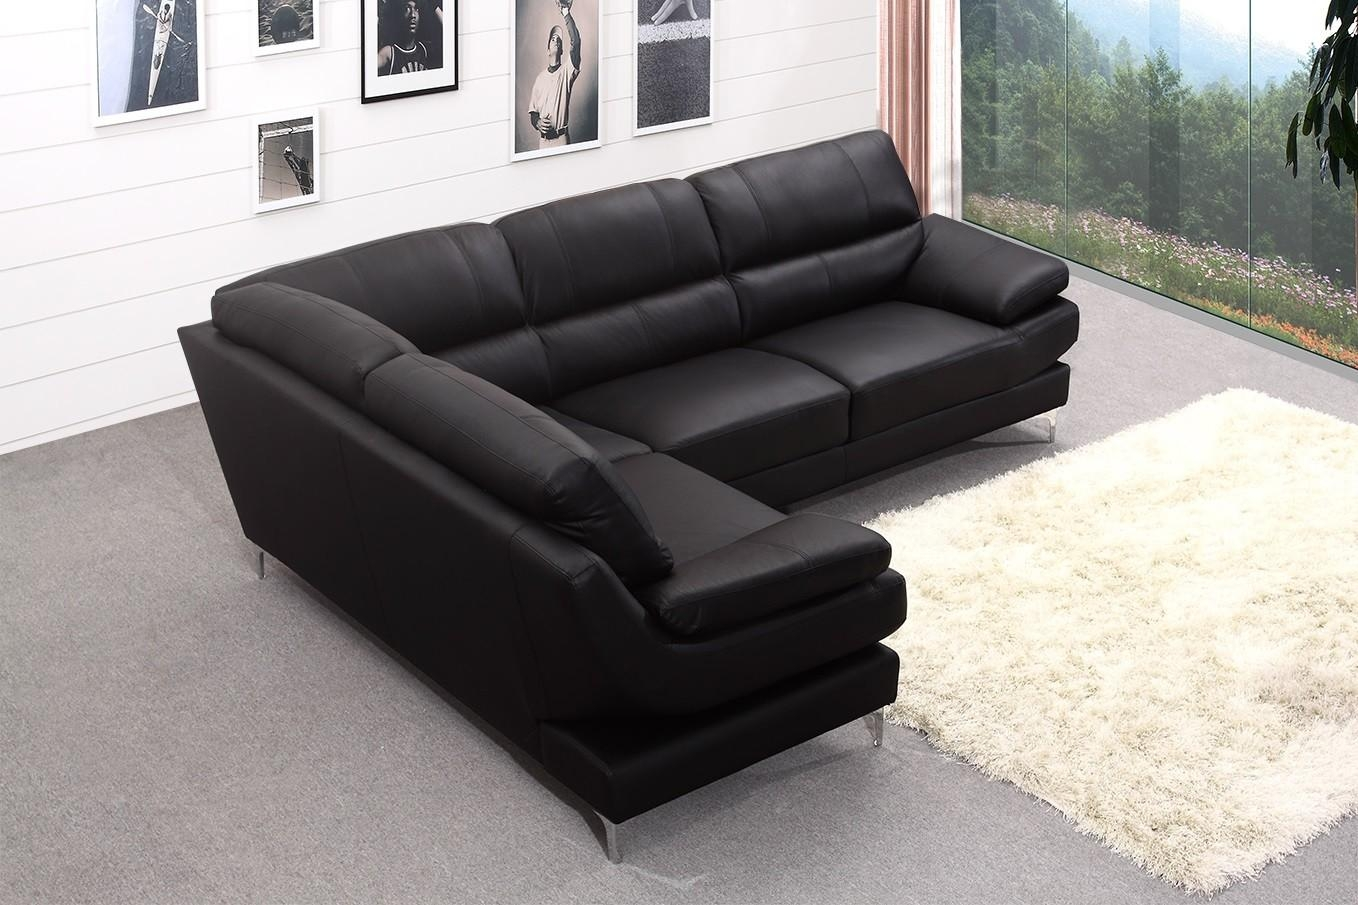 Leather Corner Sofa Sale | Tehranmix Decoration With Regard To Black Leather Corner Sofas (View 9 of 20)